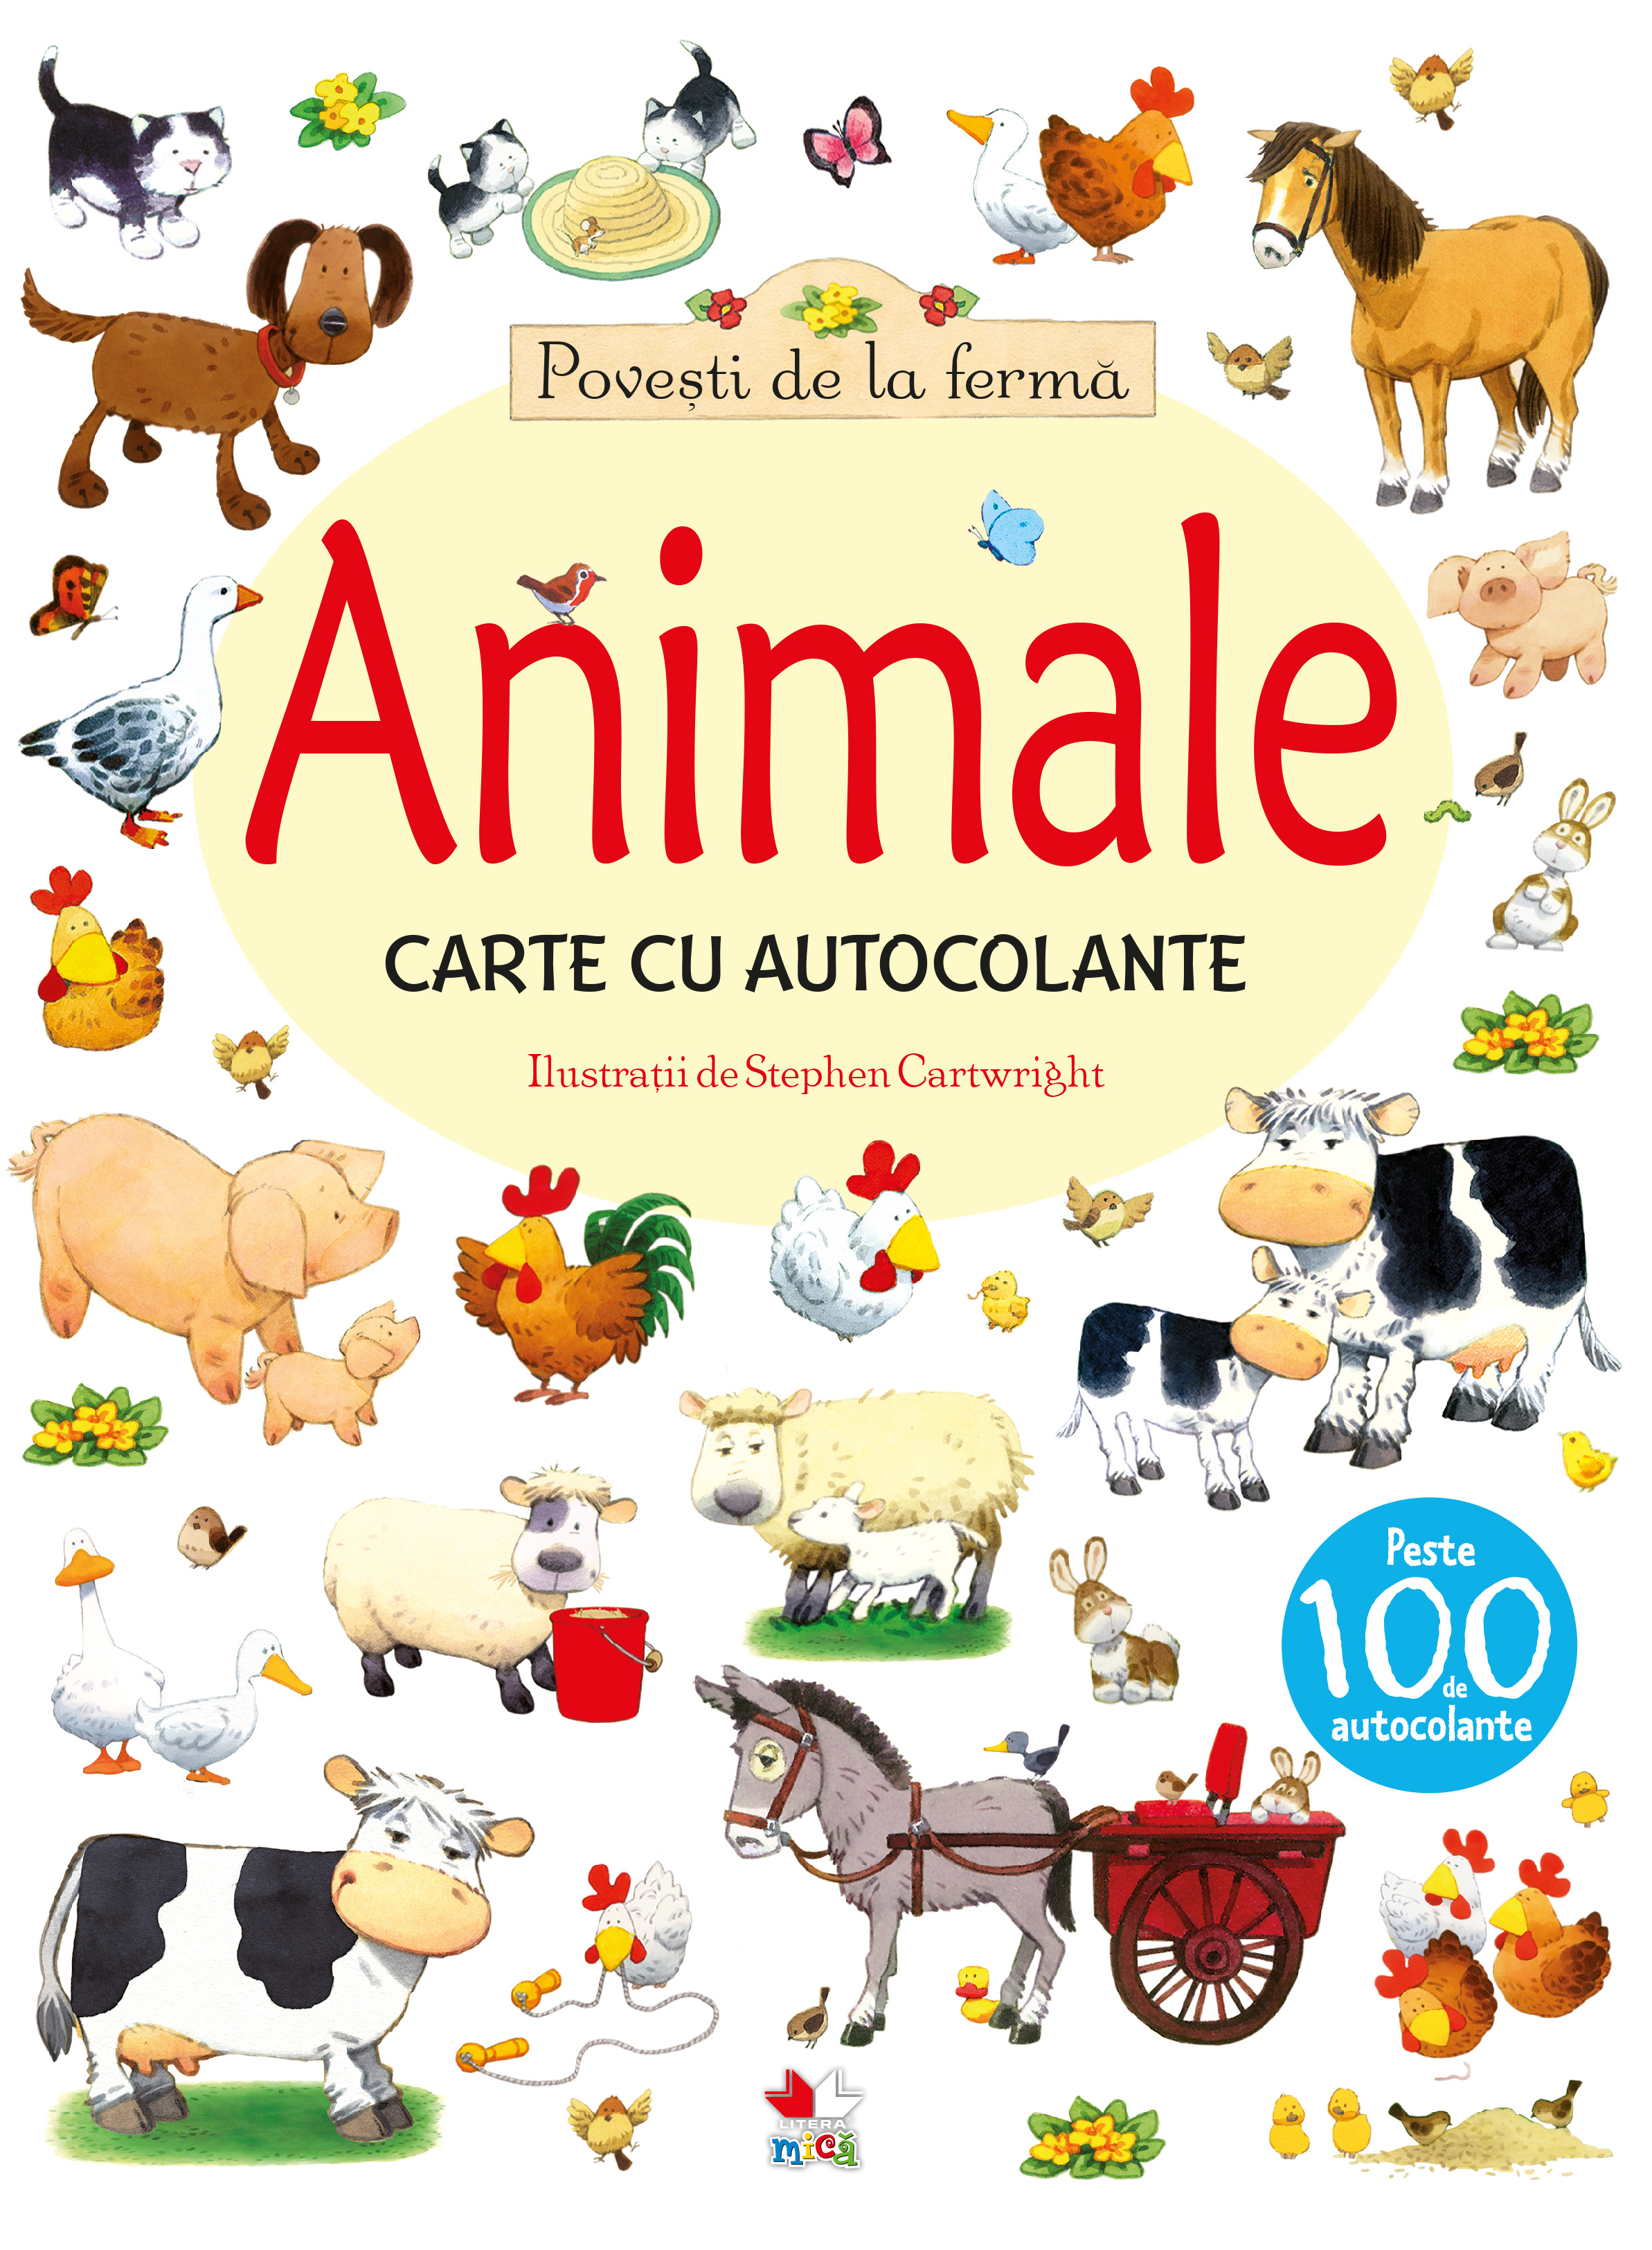 Povești de la fermă. Animale. Carte cu autocolante imagine 2021